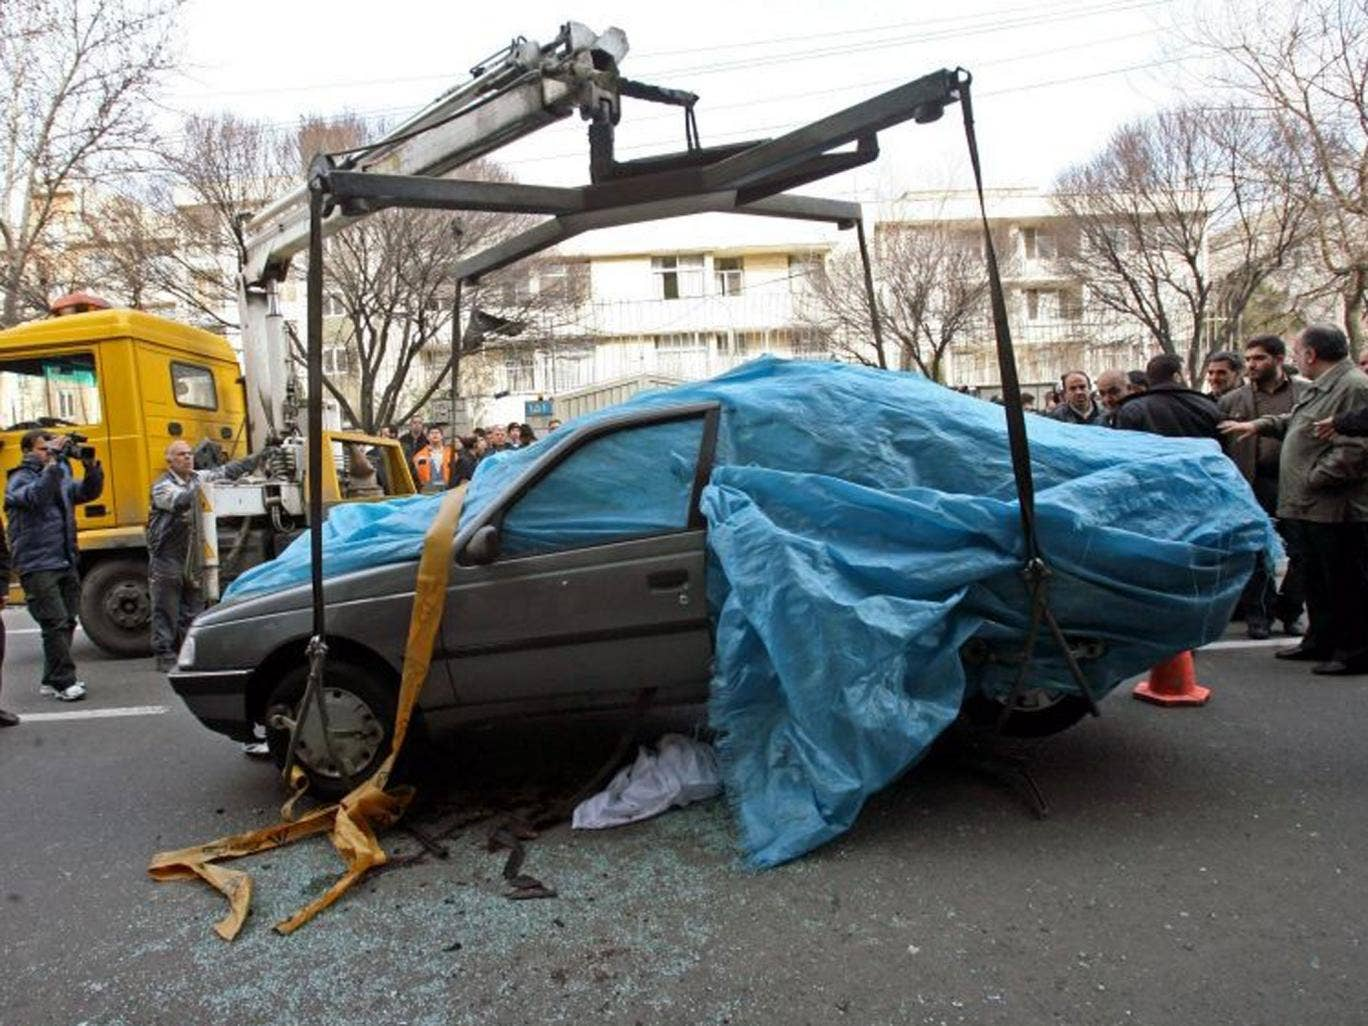 Grim toll: The bombed car of Mostafa Ahmadi-Roshan, who was killed in January 2012 – one of five to die since 2007